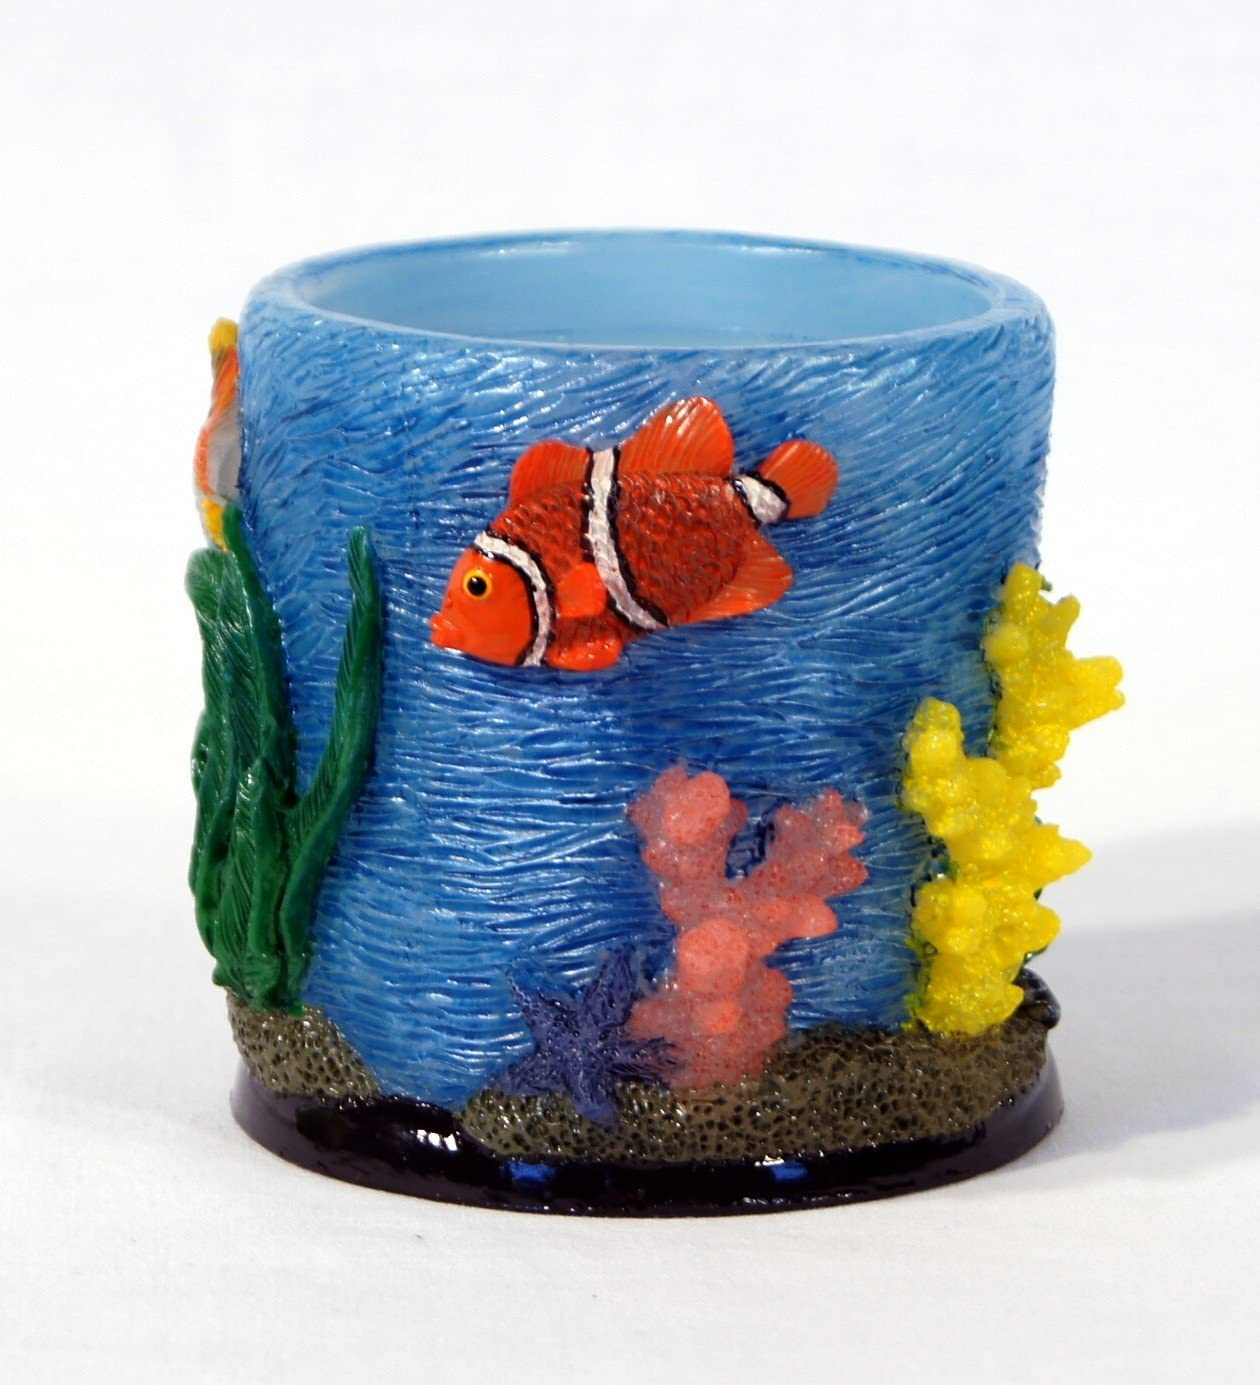 Set of 4 Handpainted Decorative Wax Art Candle Sculpture Figurine Tropical Fish Nemo Fish Total Wax Weight 3.5 Lbs